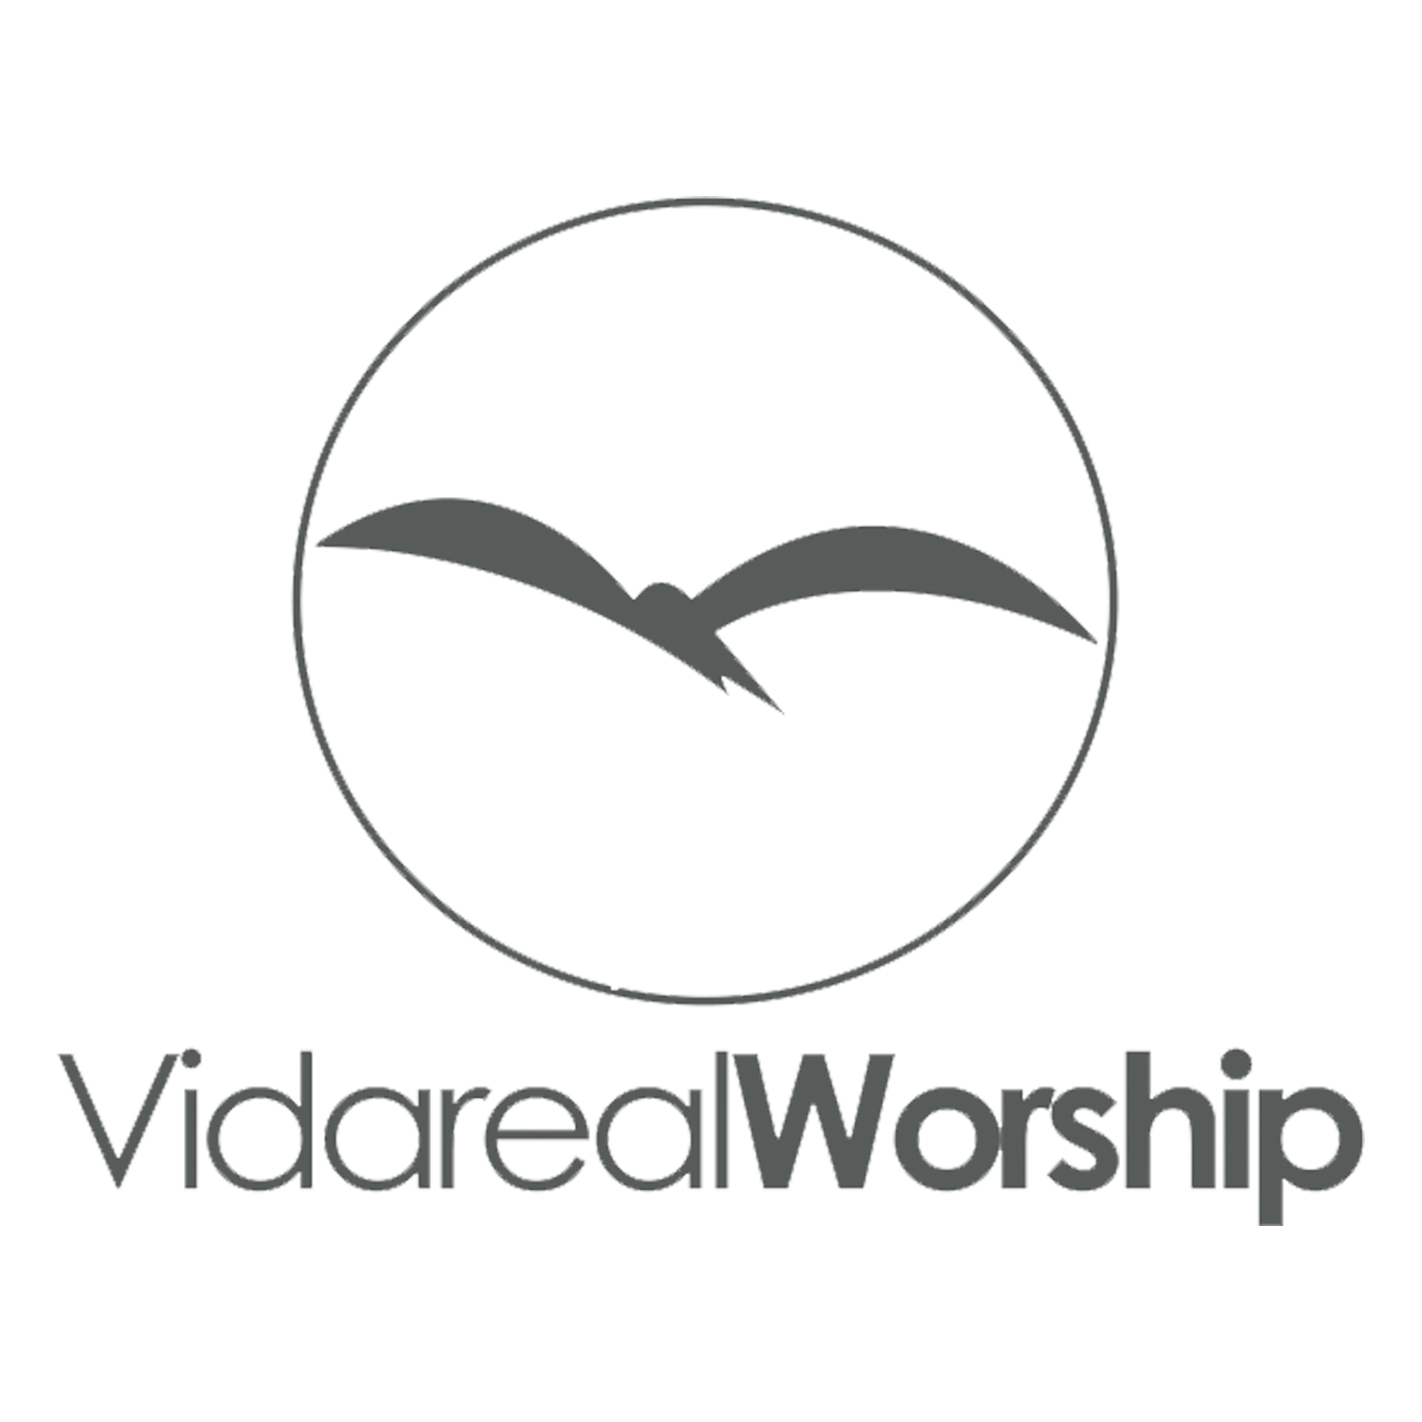 VIDA REAL WORSHIP Logo